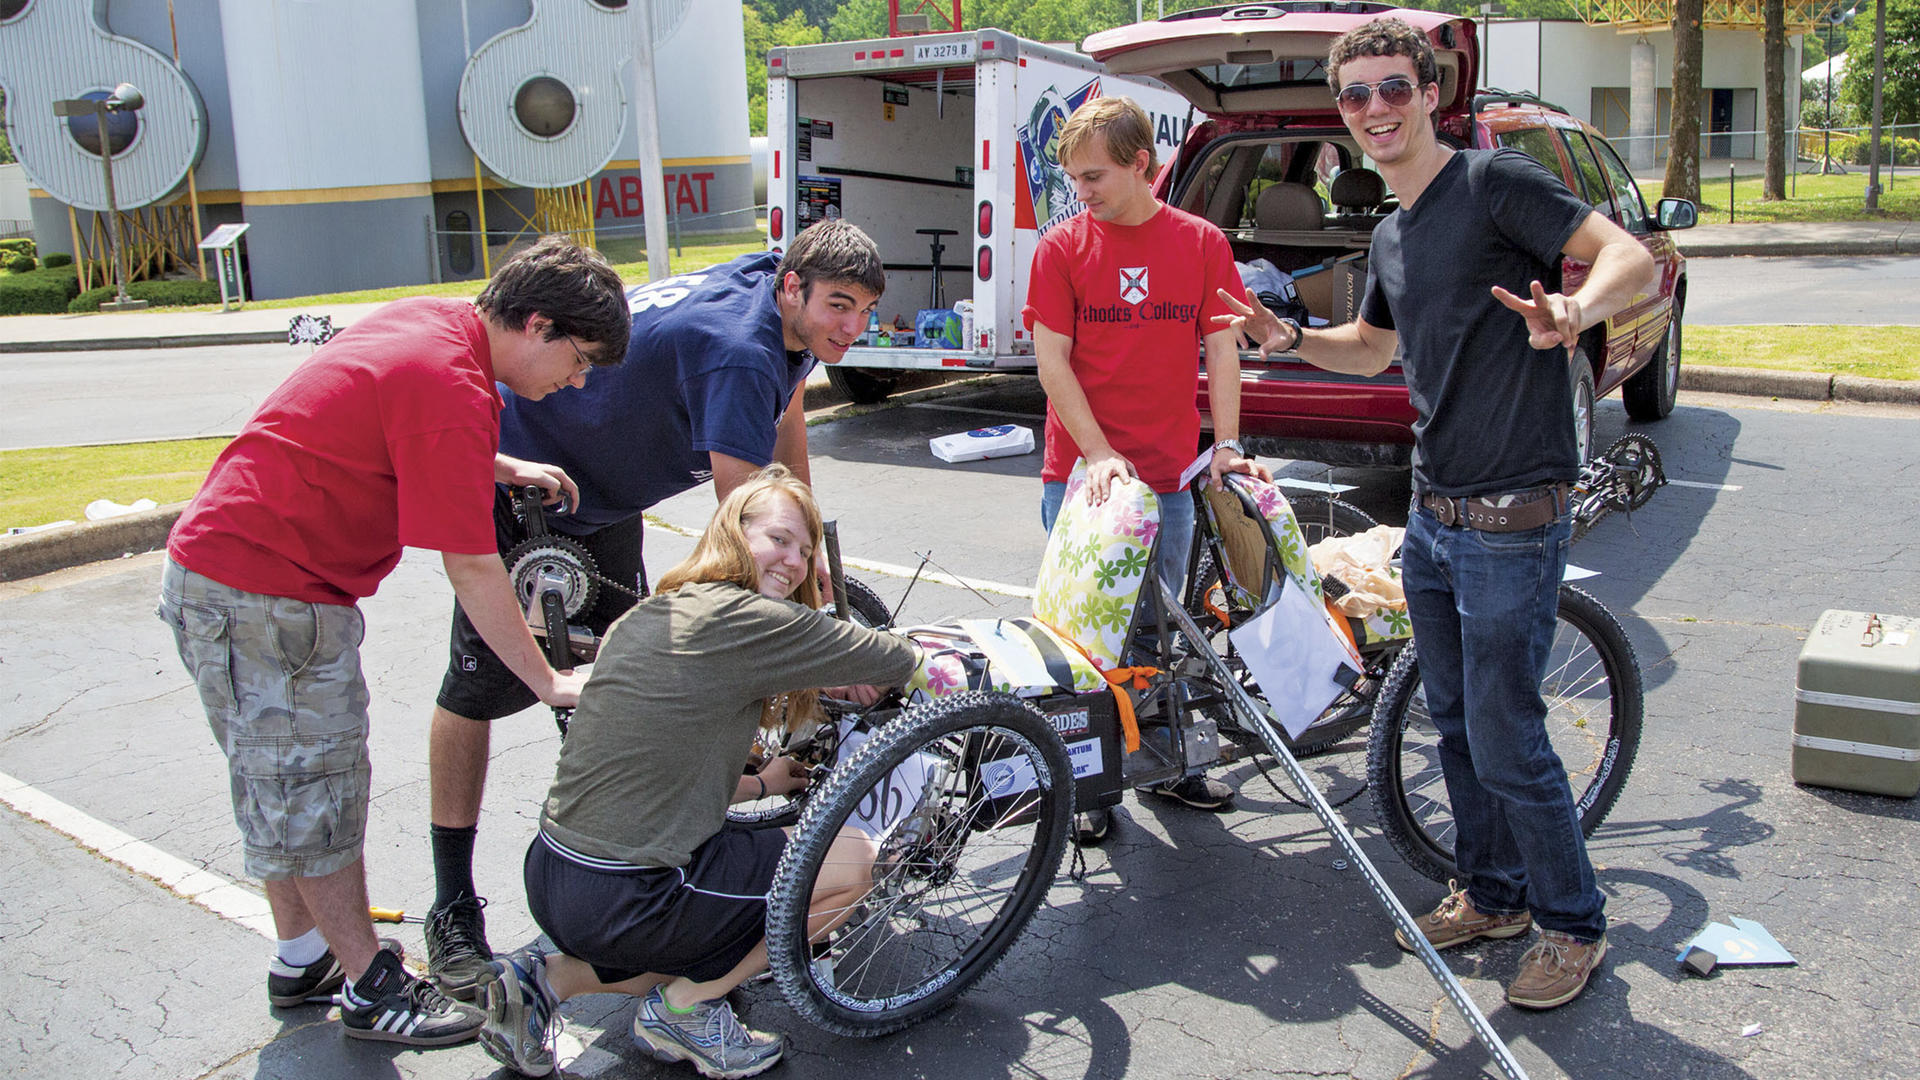 Students tinker with a tricycle in front of a silo that says U.S. space camp